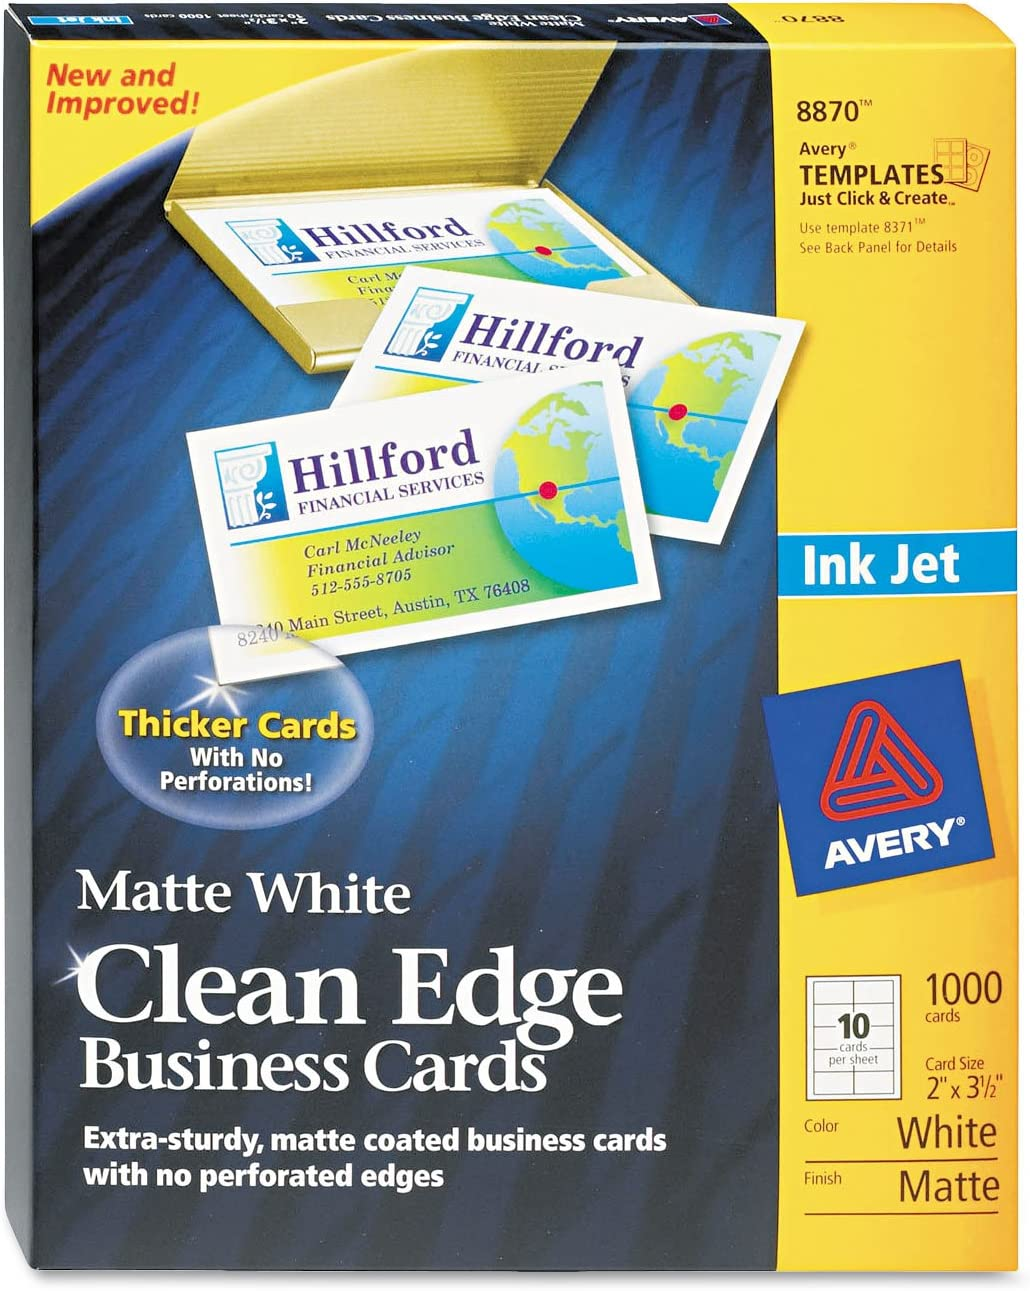 AVE8870 - Avery Two-Side Max 42% OFF Printable Clean Edge Store Business Cards